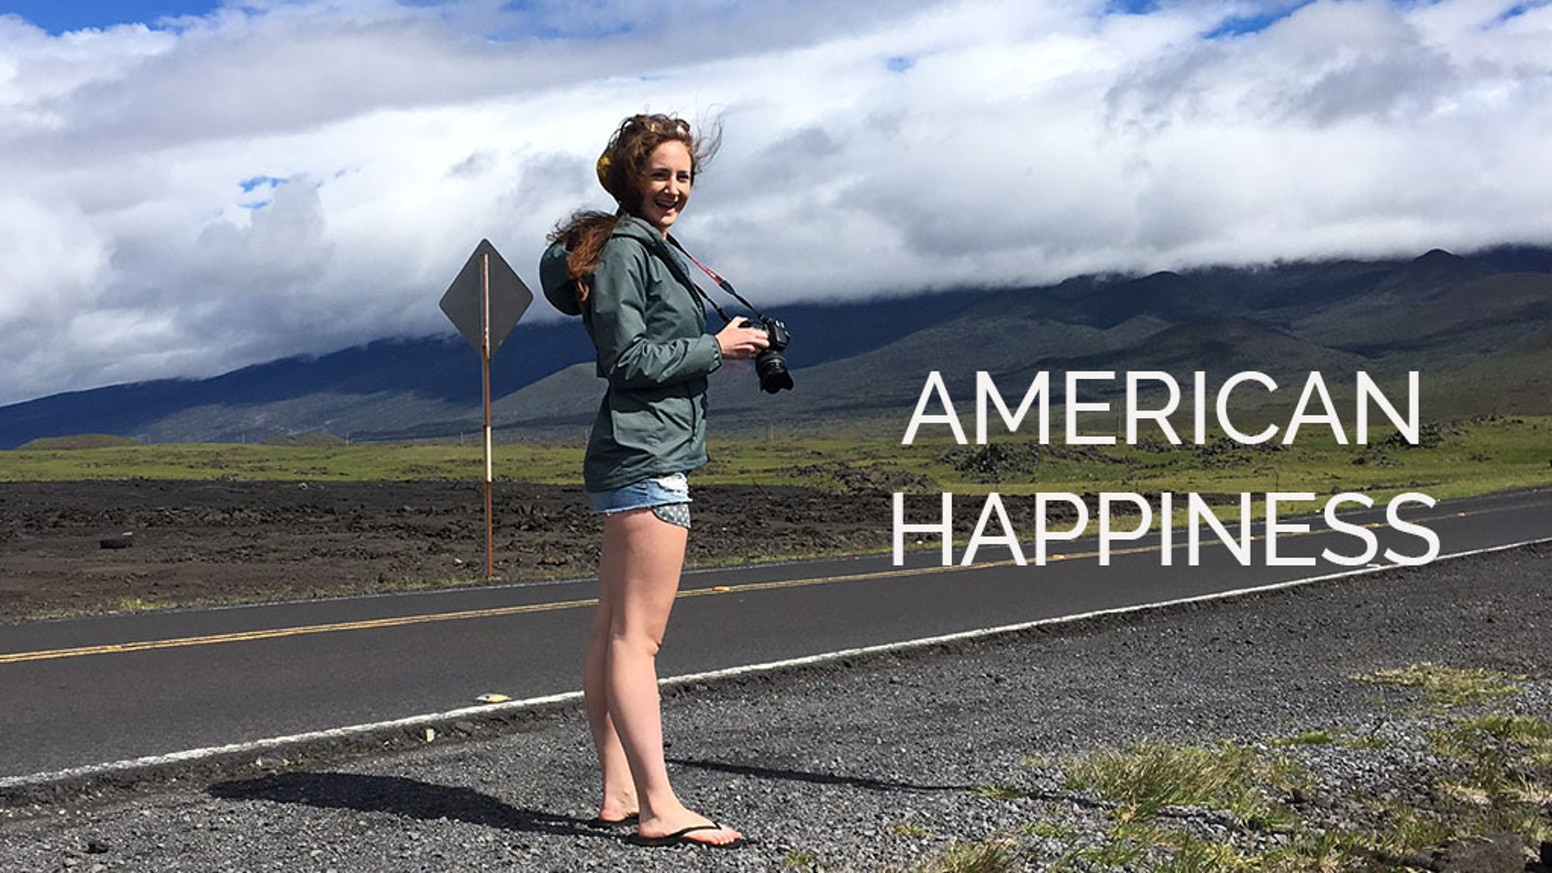 Capturing and sharing the GOOD in America. 50 states, 6 months, 1 documentary.